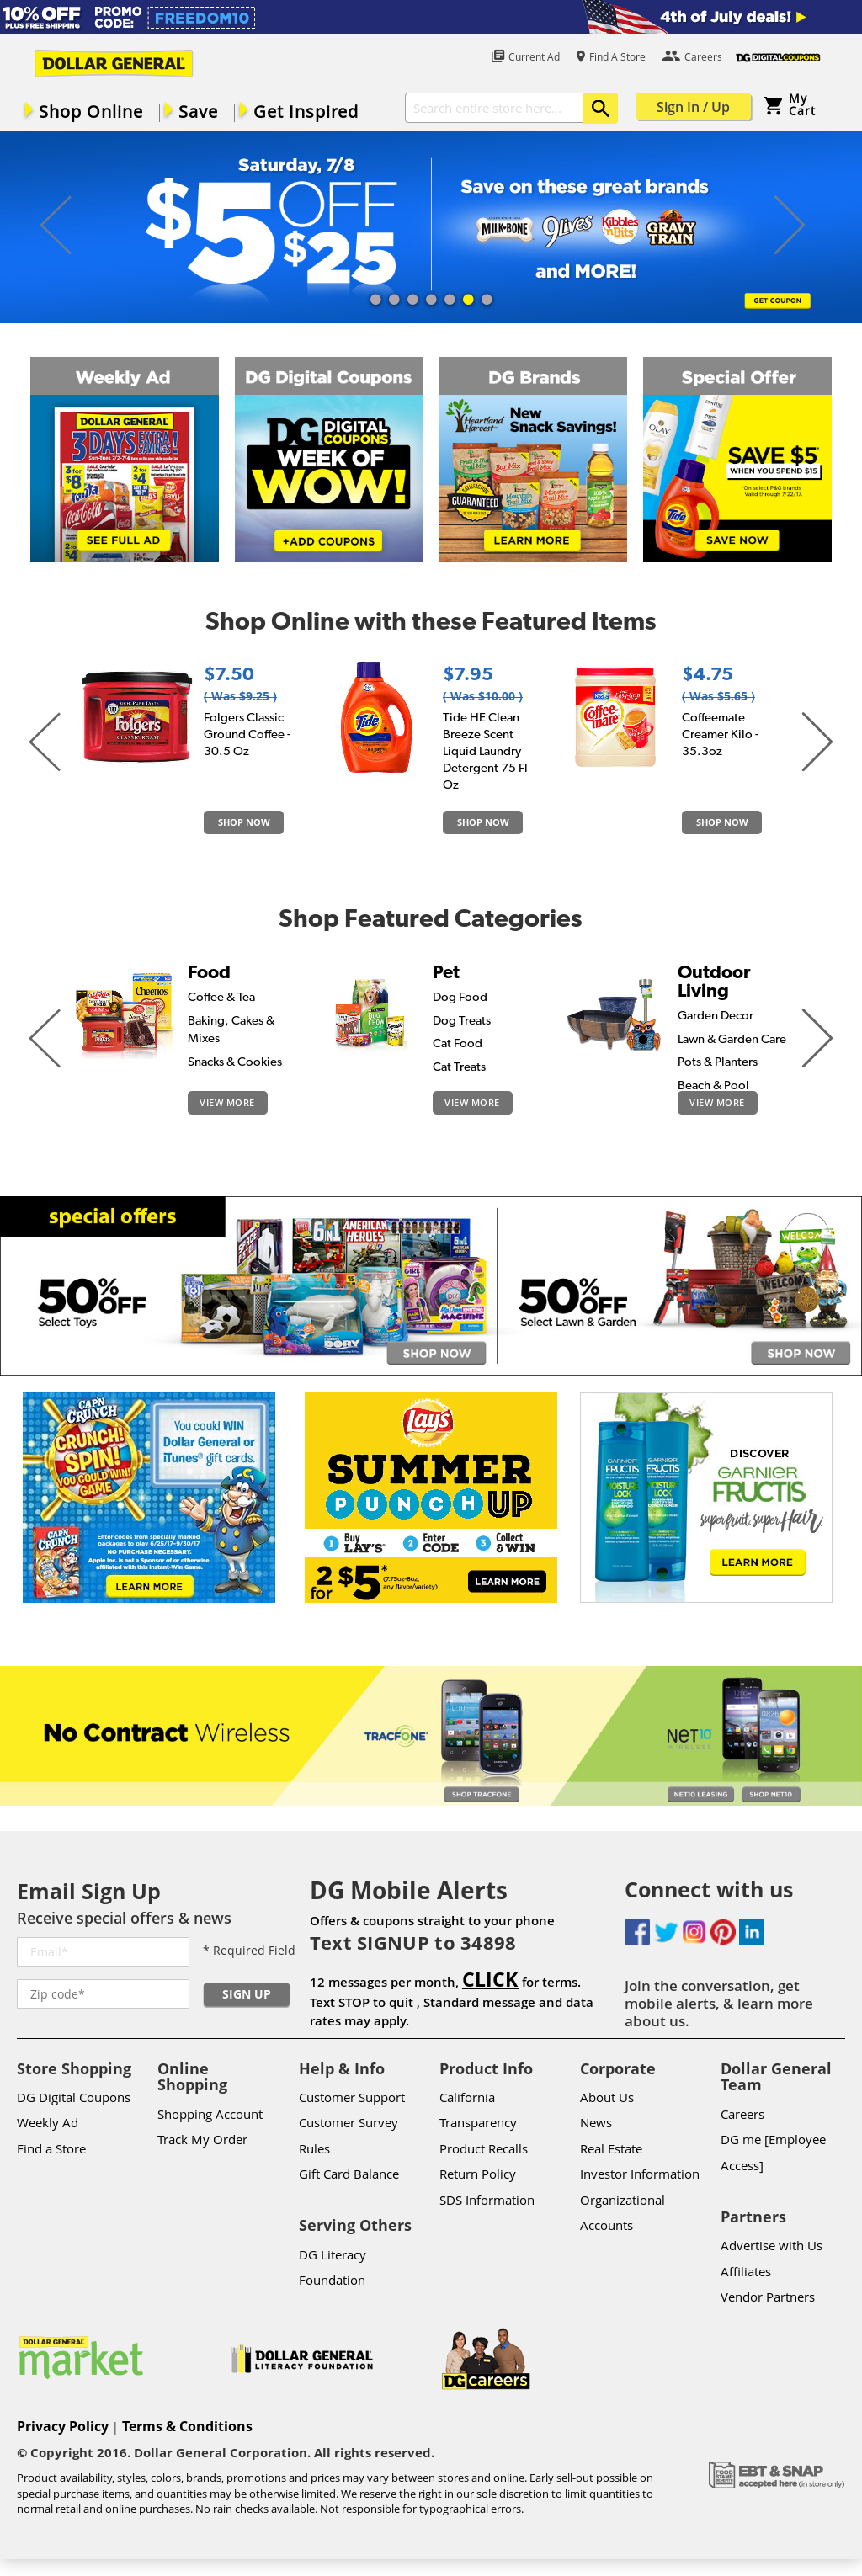 Dollar General Competitors, Revenue and Employees - Owler Company ...